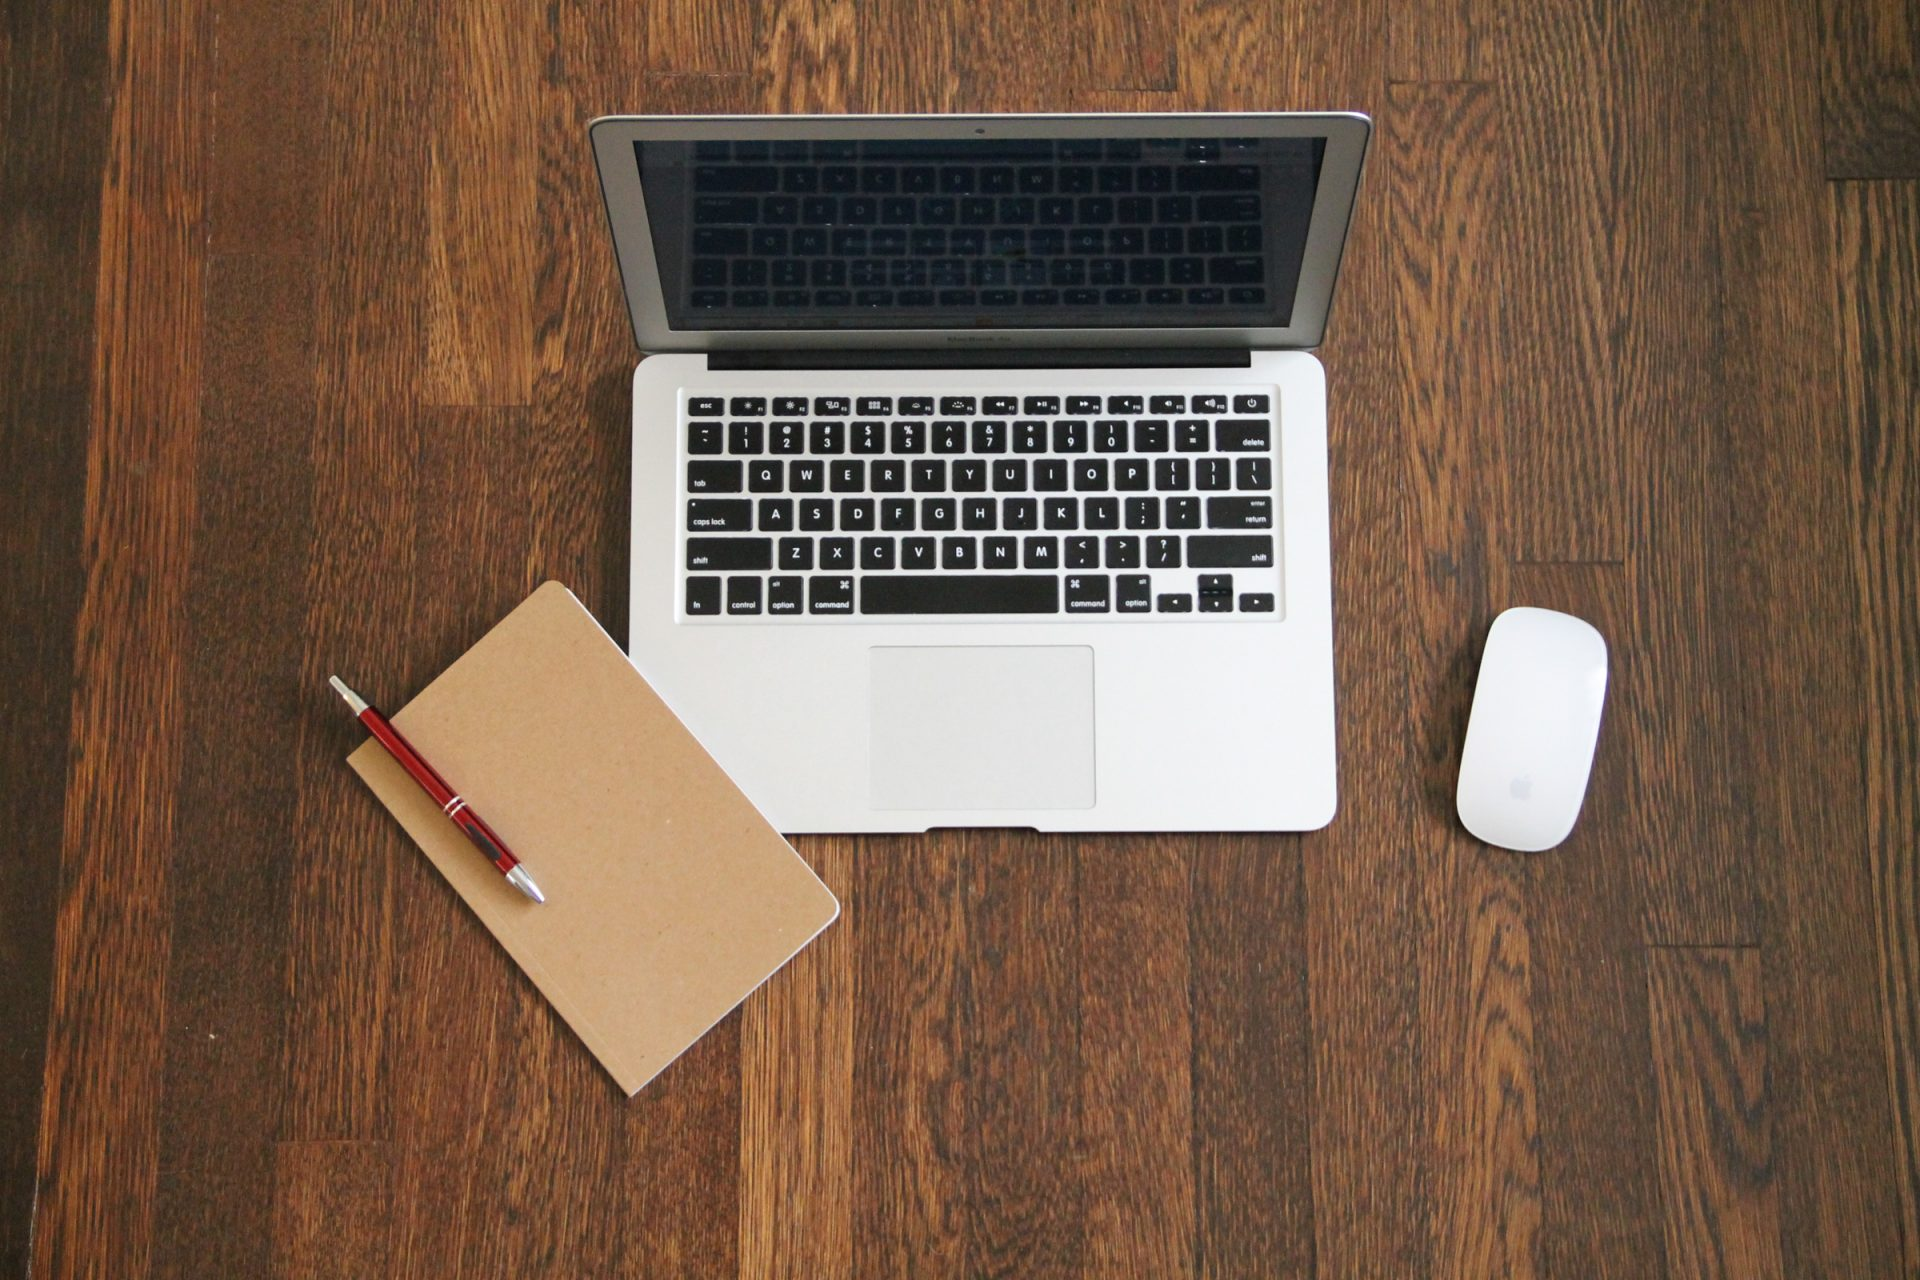 Macbook Laptop with Journal & Mouse